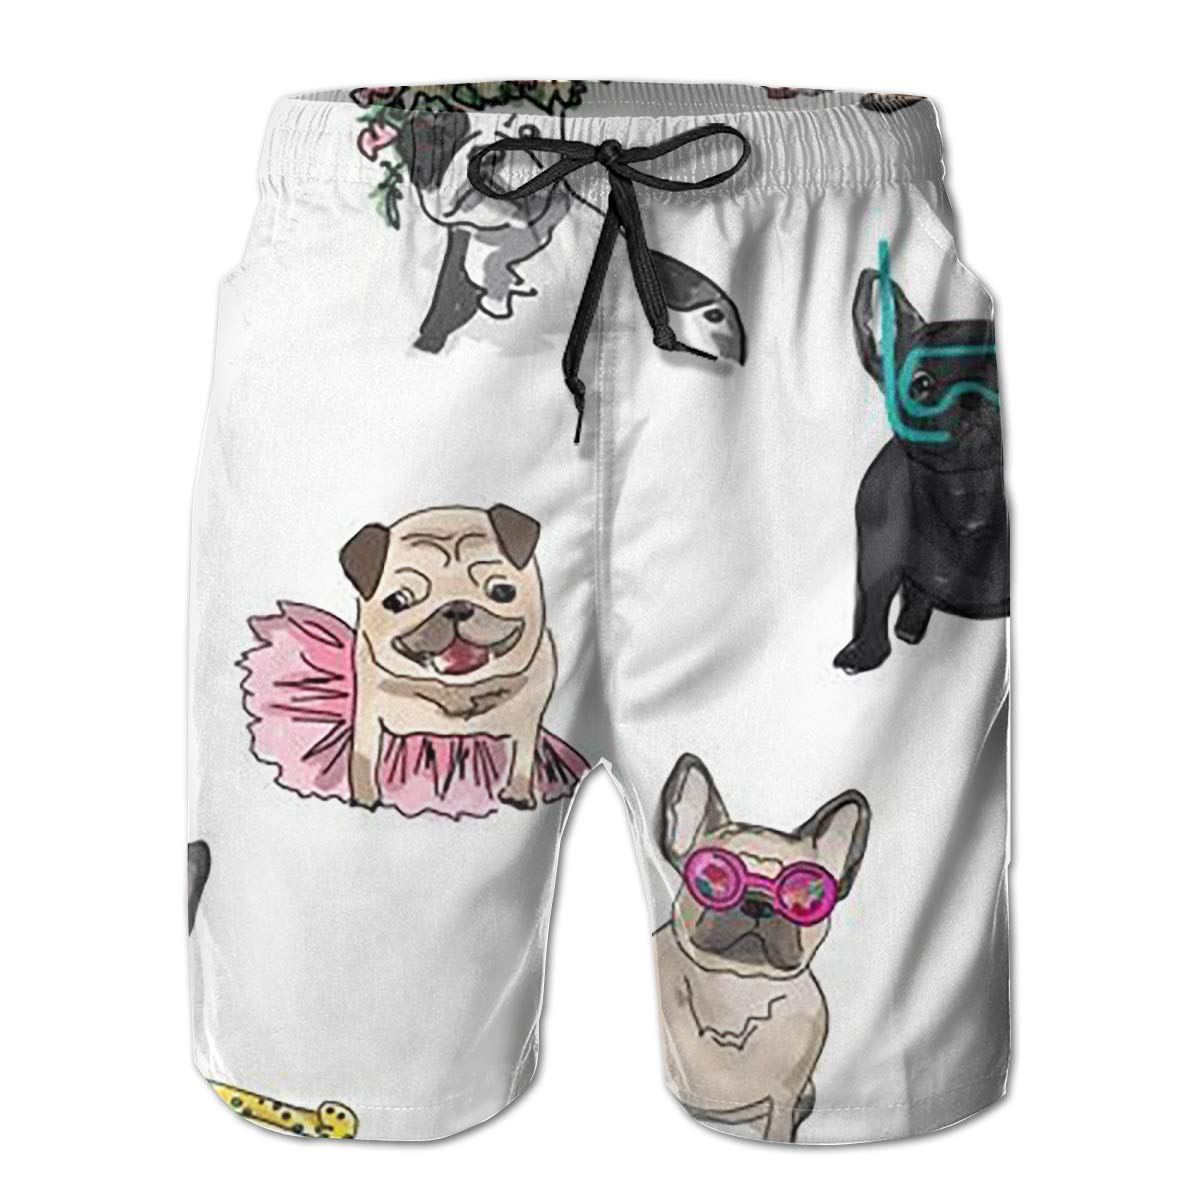 French Bulldog Art Digital Funny Summer Quick-Drying Swim Trunks Beach Shorts Cargo Shorts